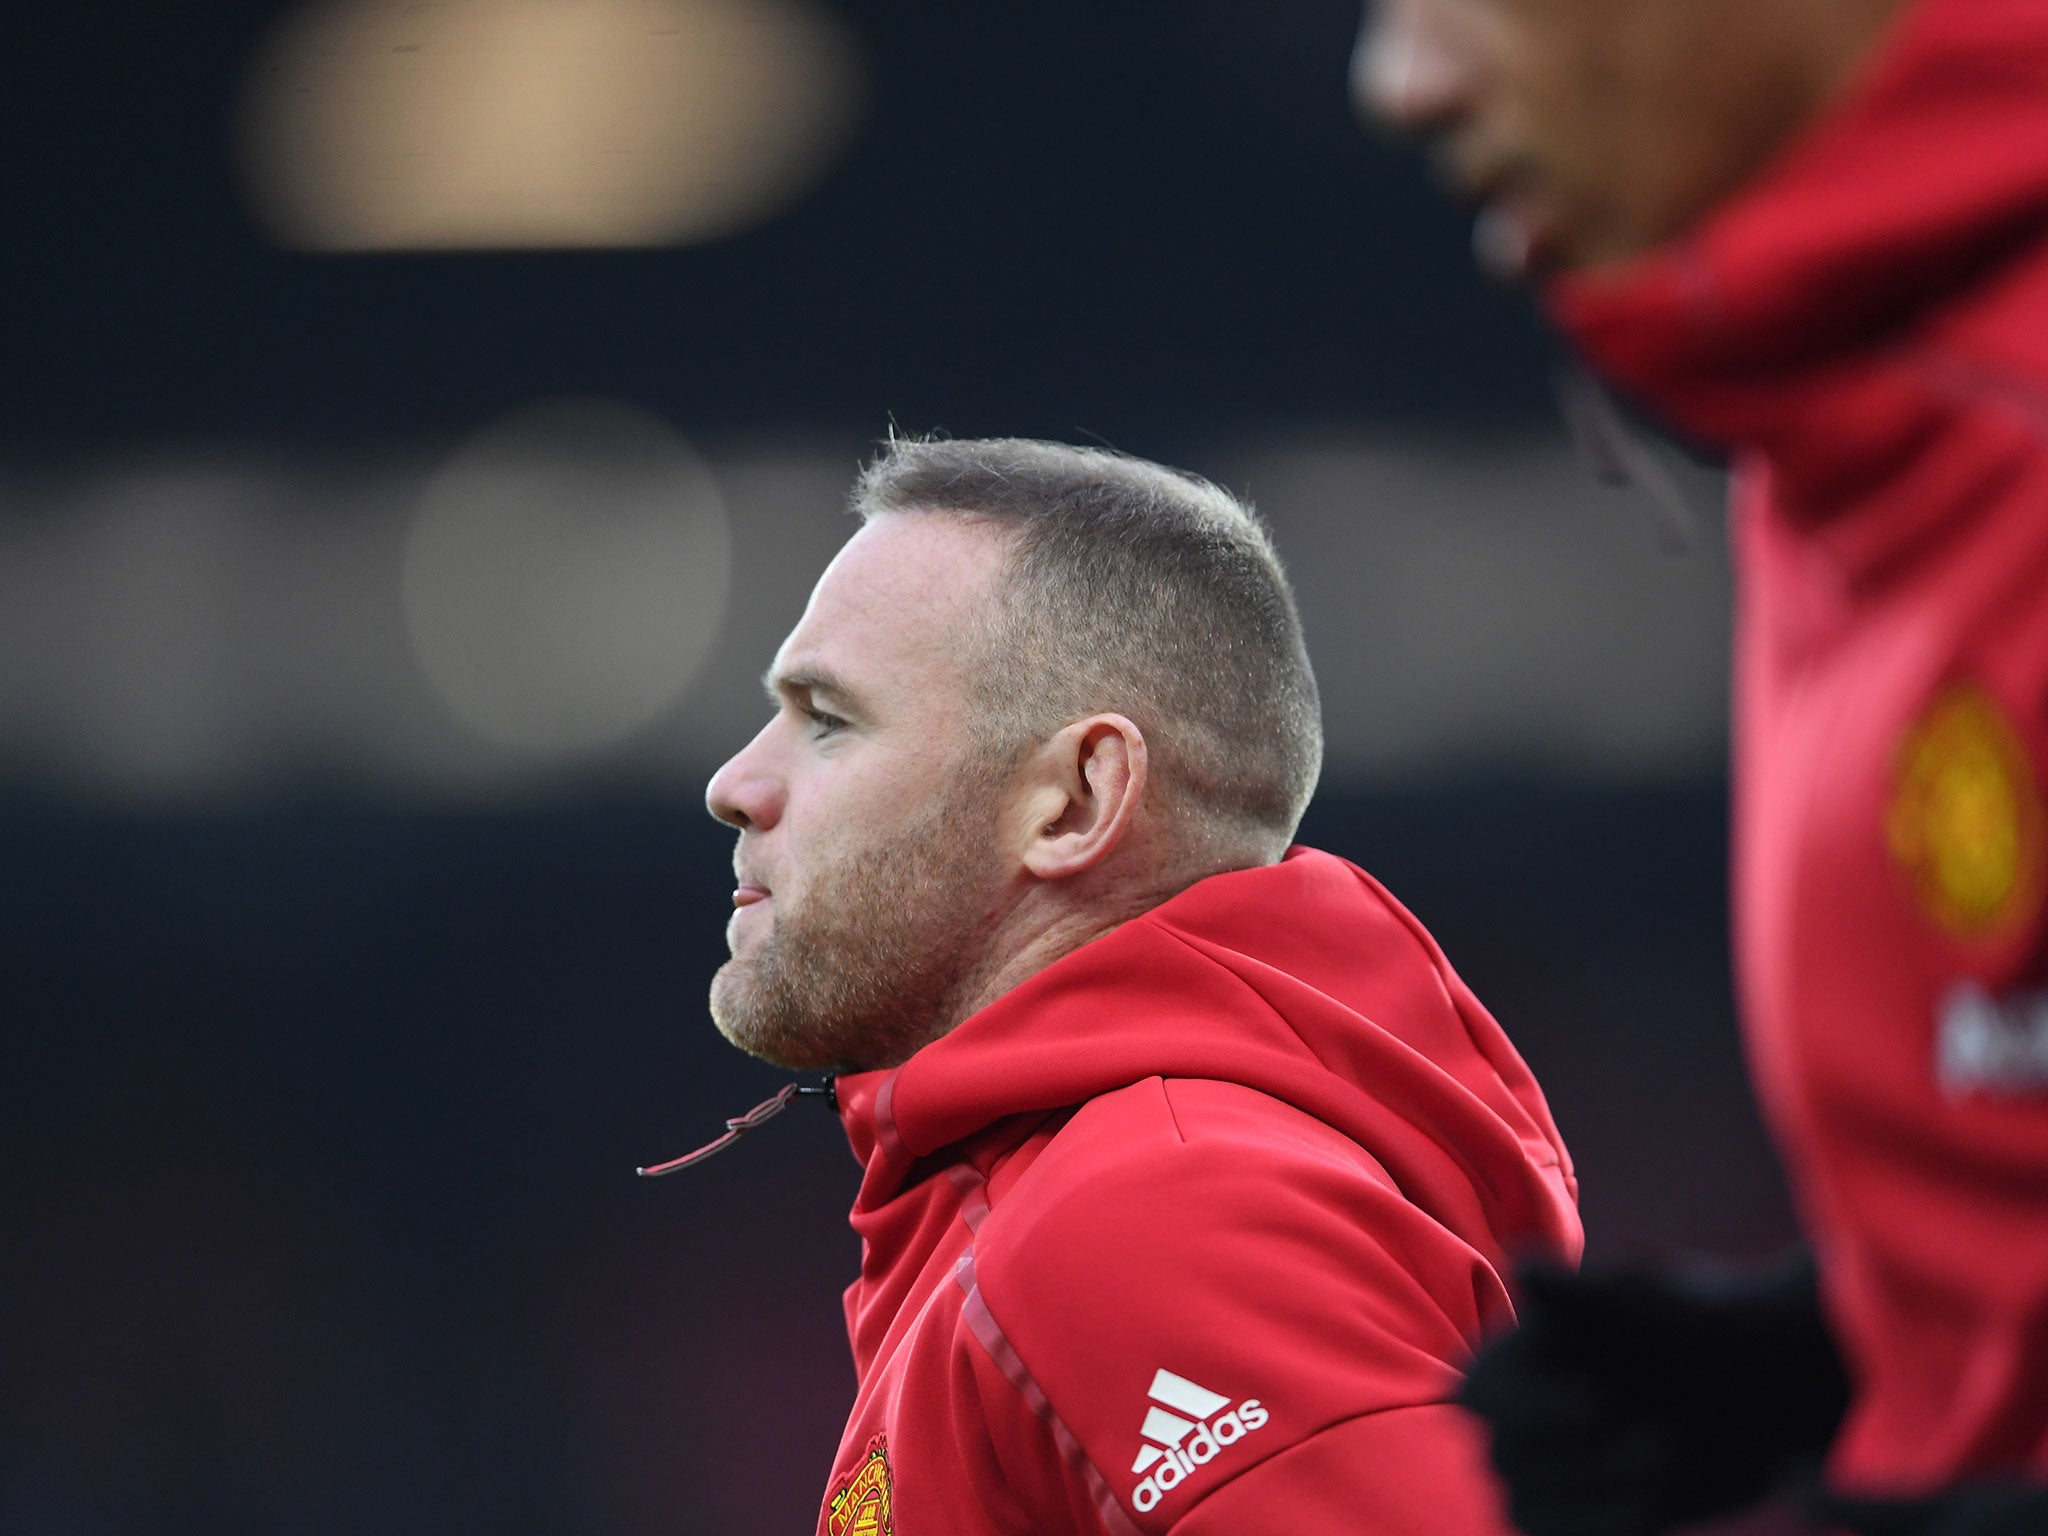 wayne rooney - photo #9